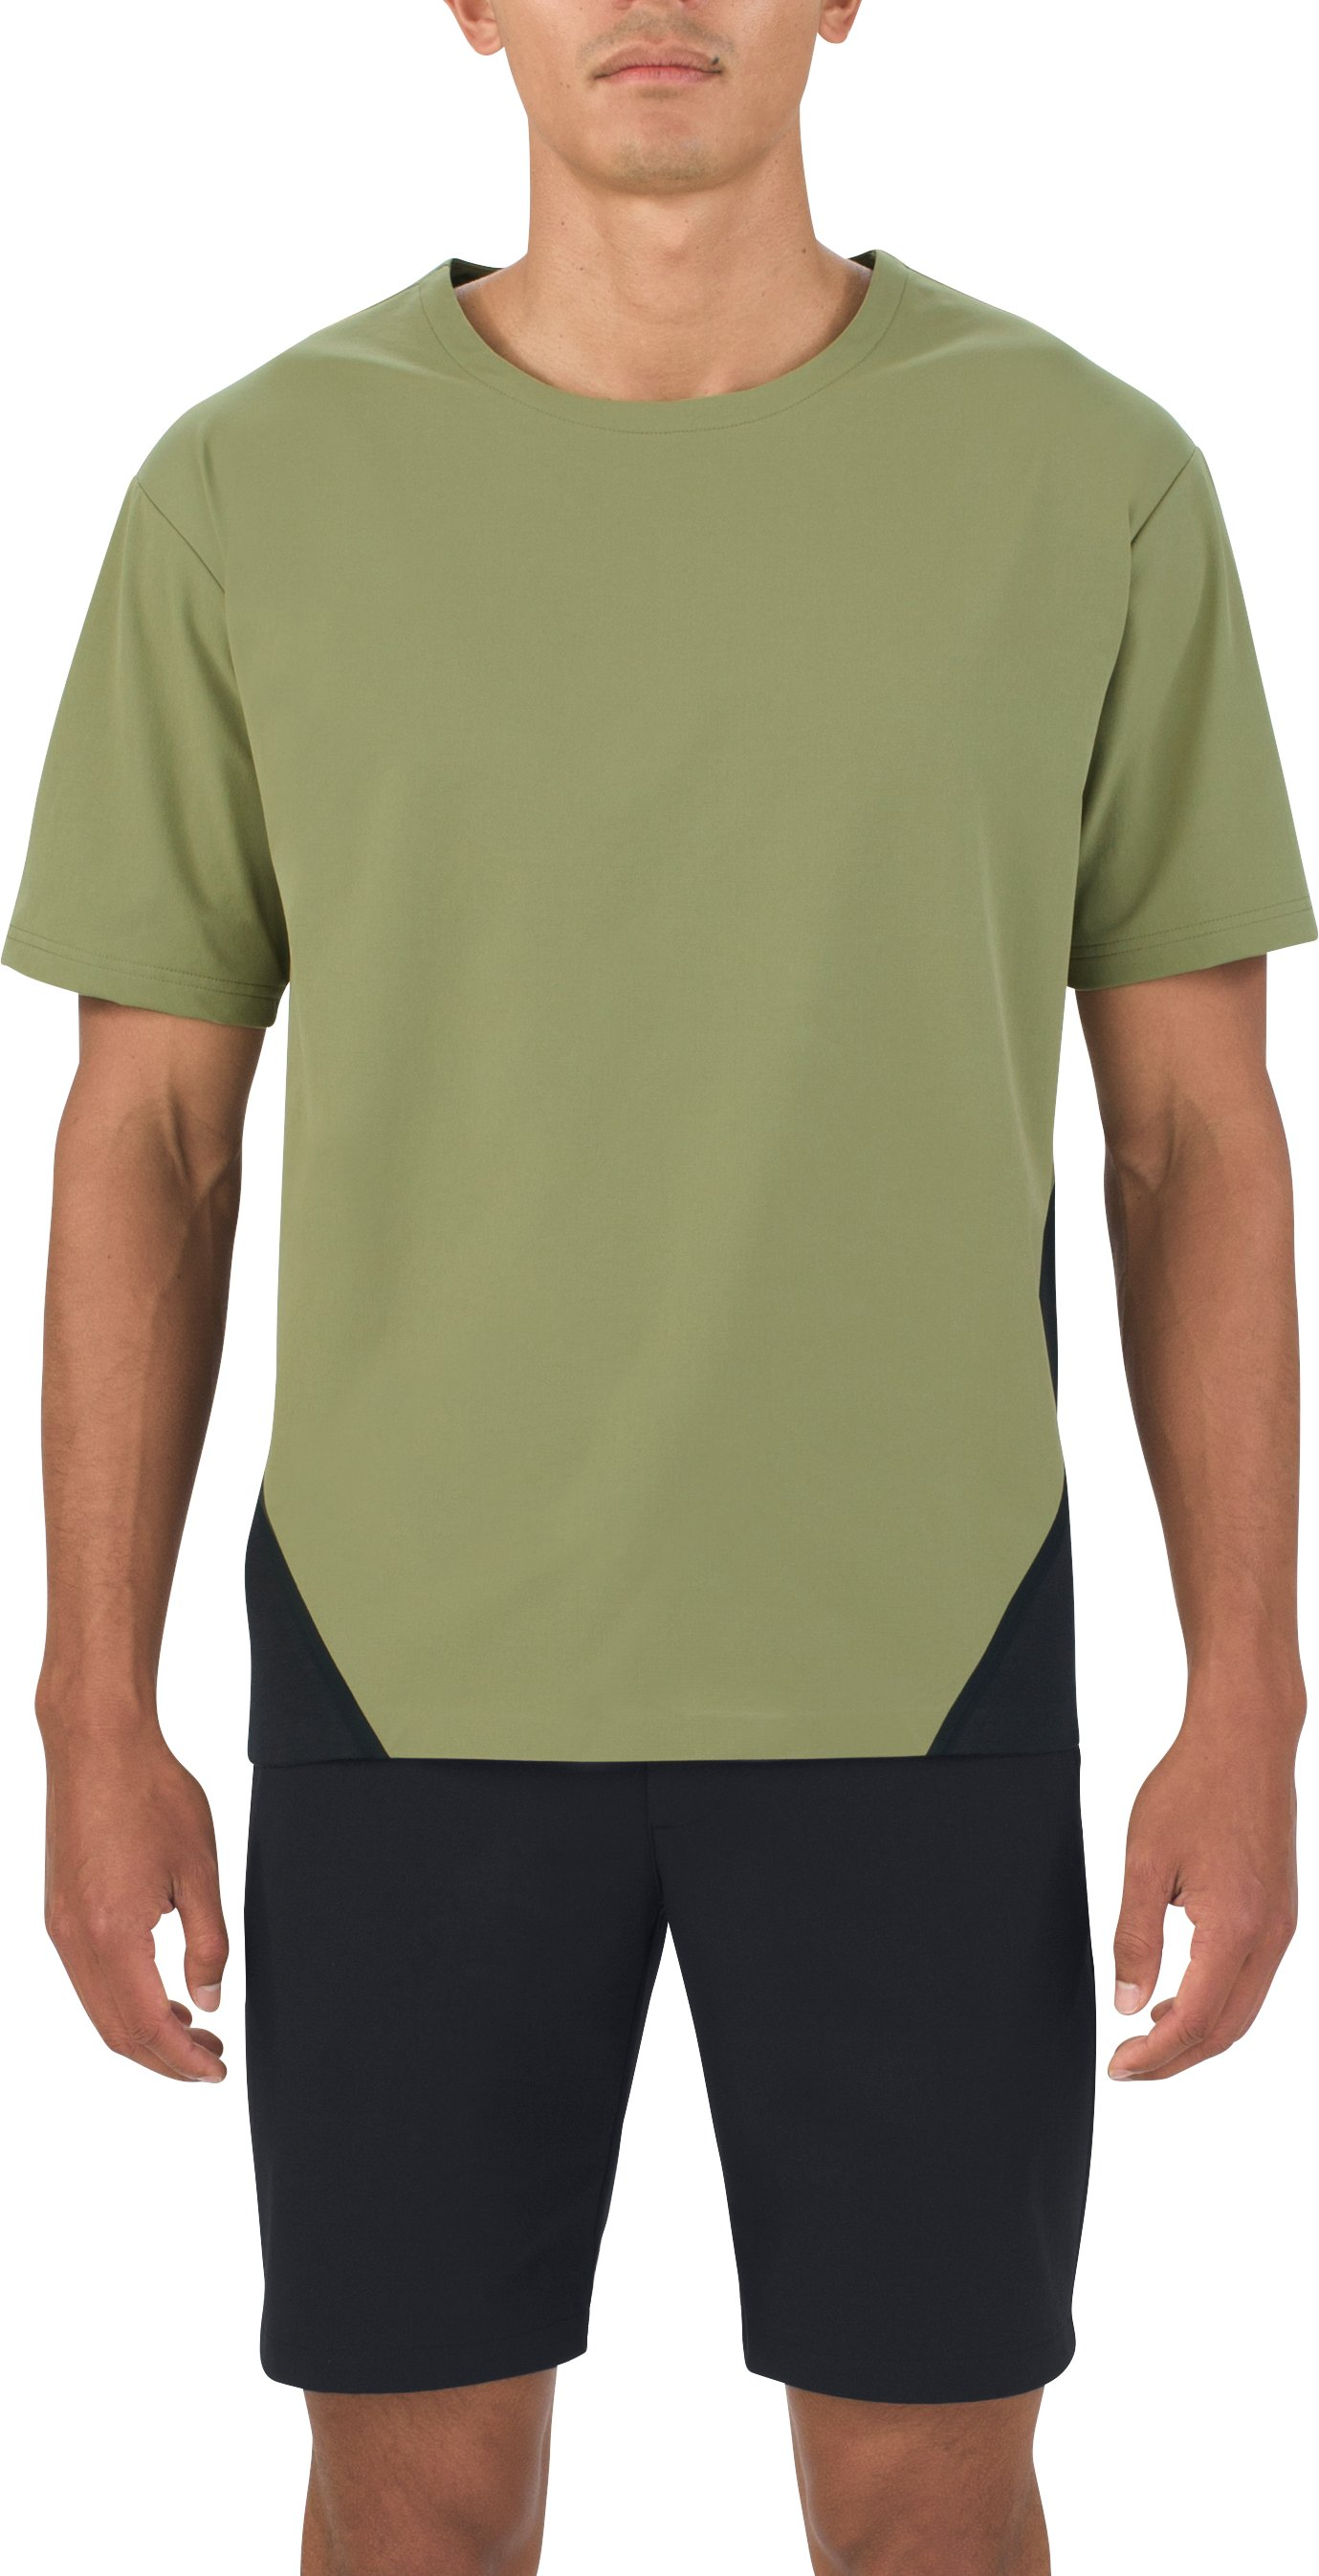 DWR/Crepe SS Crew, MILITARY, zoomed image